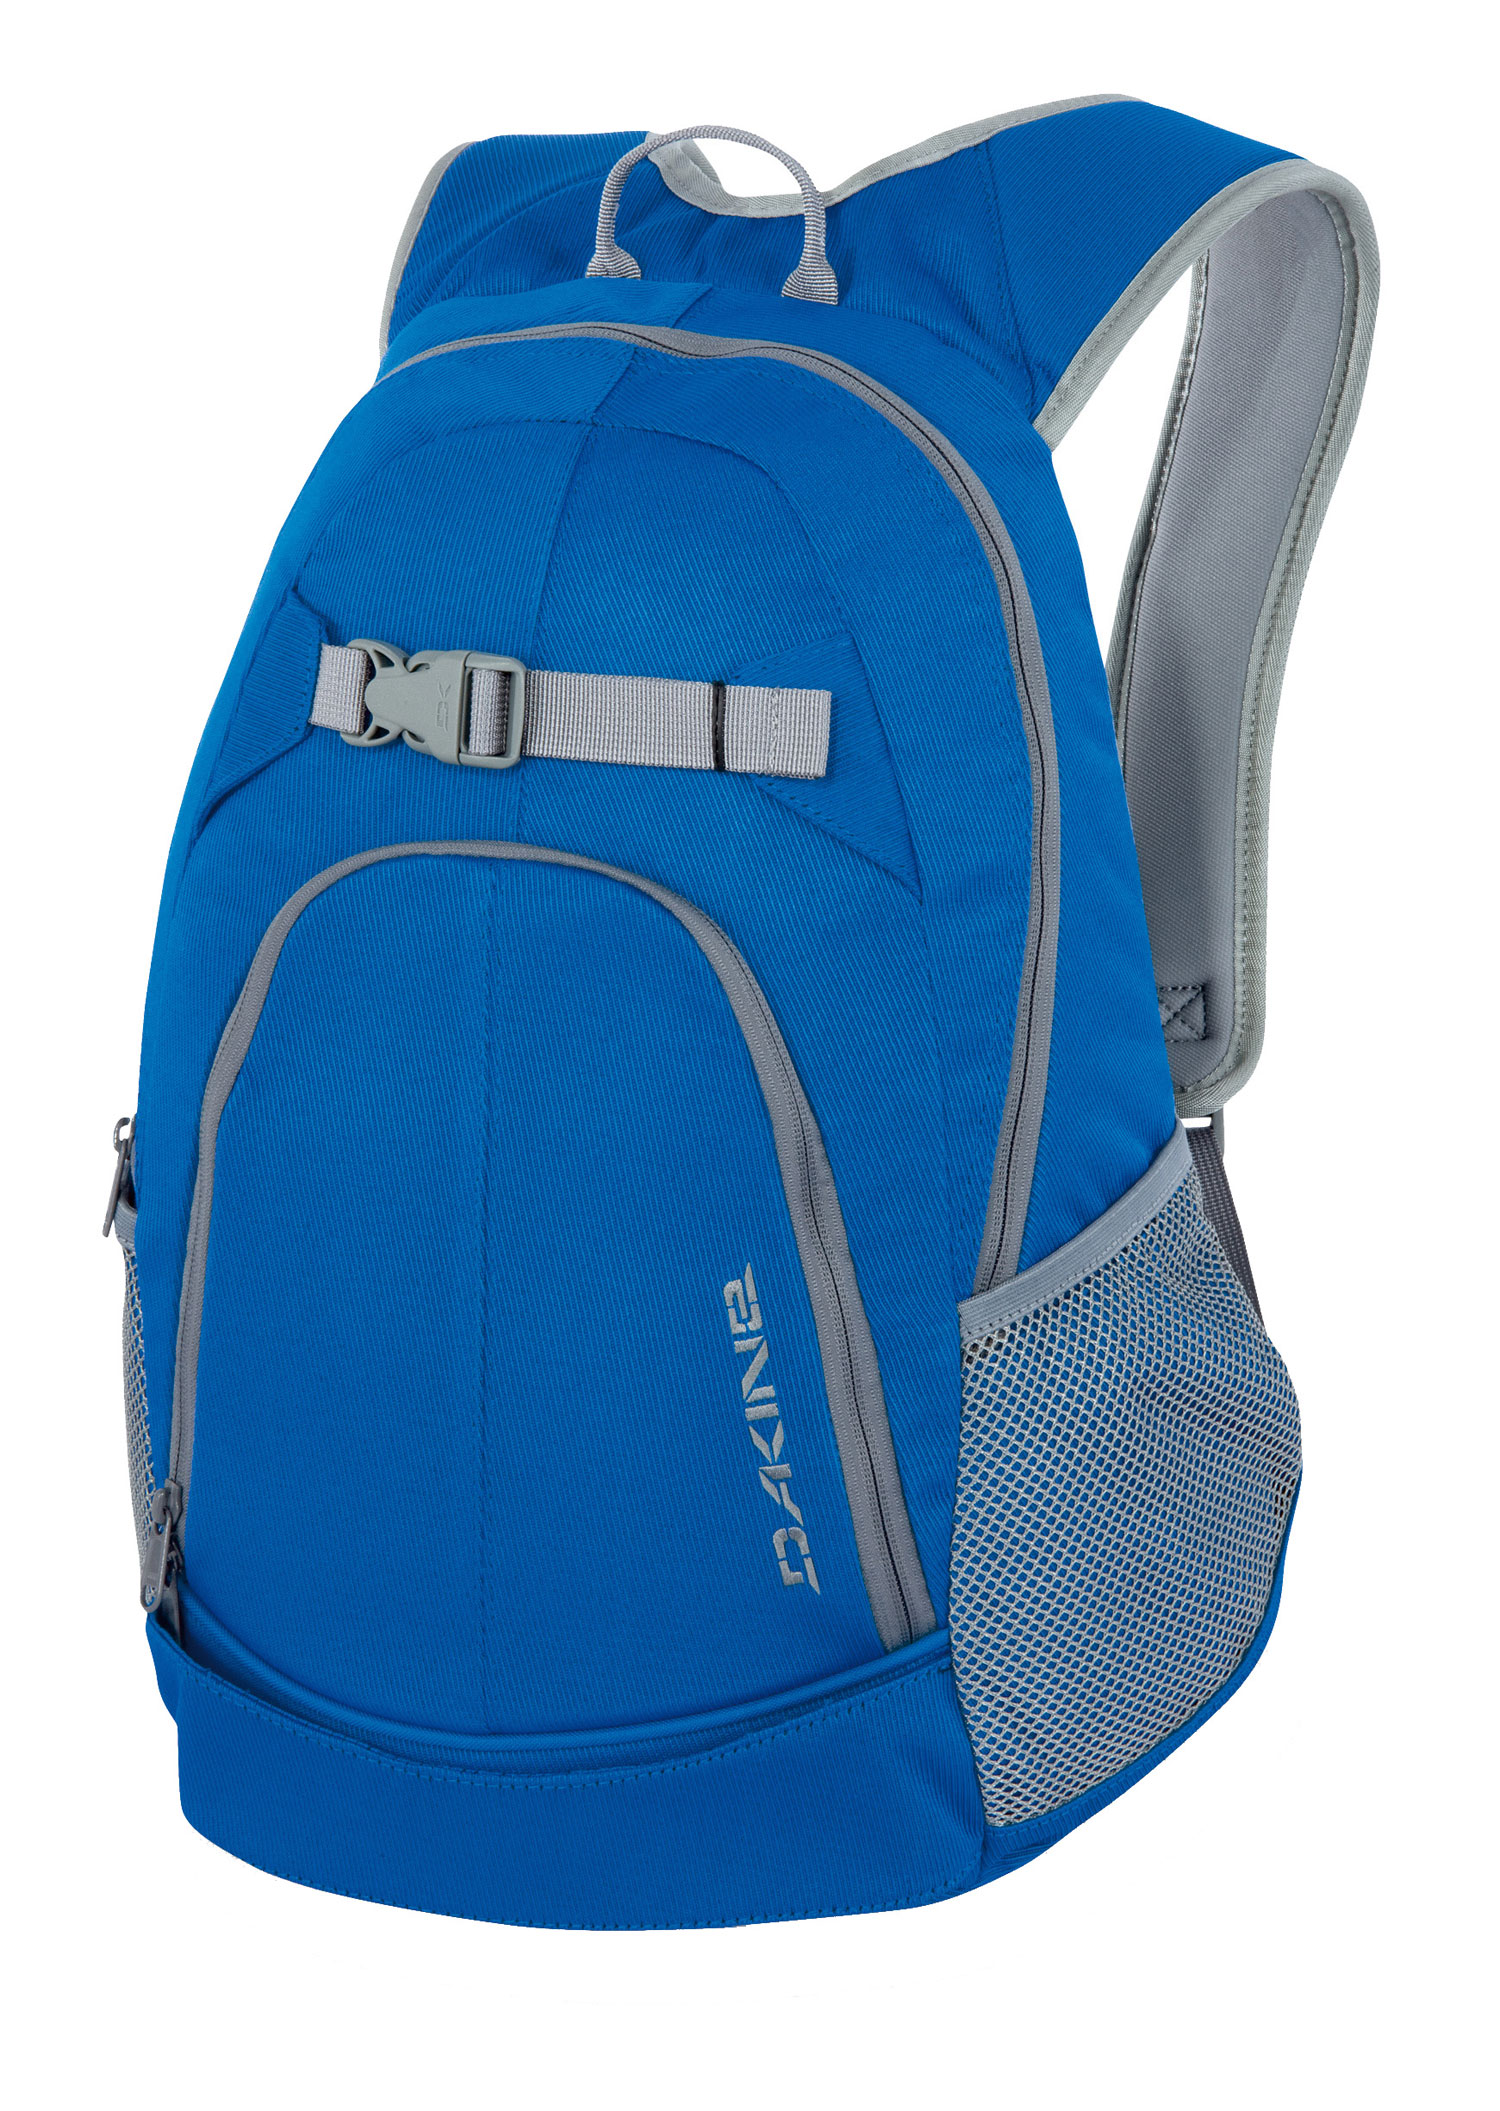 "Surf If you're looking for a stylish bag that offers practicality and function, the Dakine Pivot Backpack is the one for you. So roomy, this bag features a large component to store all your main items. With a smaller pocket upfront, store all your smaller, go-to items for easy access. So perfect and practical, take this everywhere and you'll find that just about anything you need is right where you need it, close-by.Key Features of the Dakine Pivot Backpack: Quick load skate carry Organizer pocket Mesh side pockets Volume 1300 cu.in. [ 21L ] Size 18 x 12 x 6"" [ 46 x 30 x 15cm ] - $22.95"